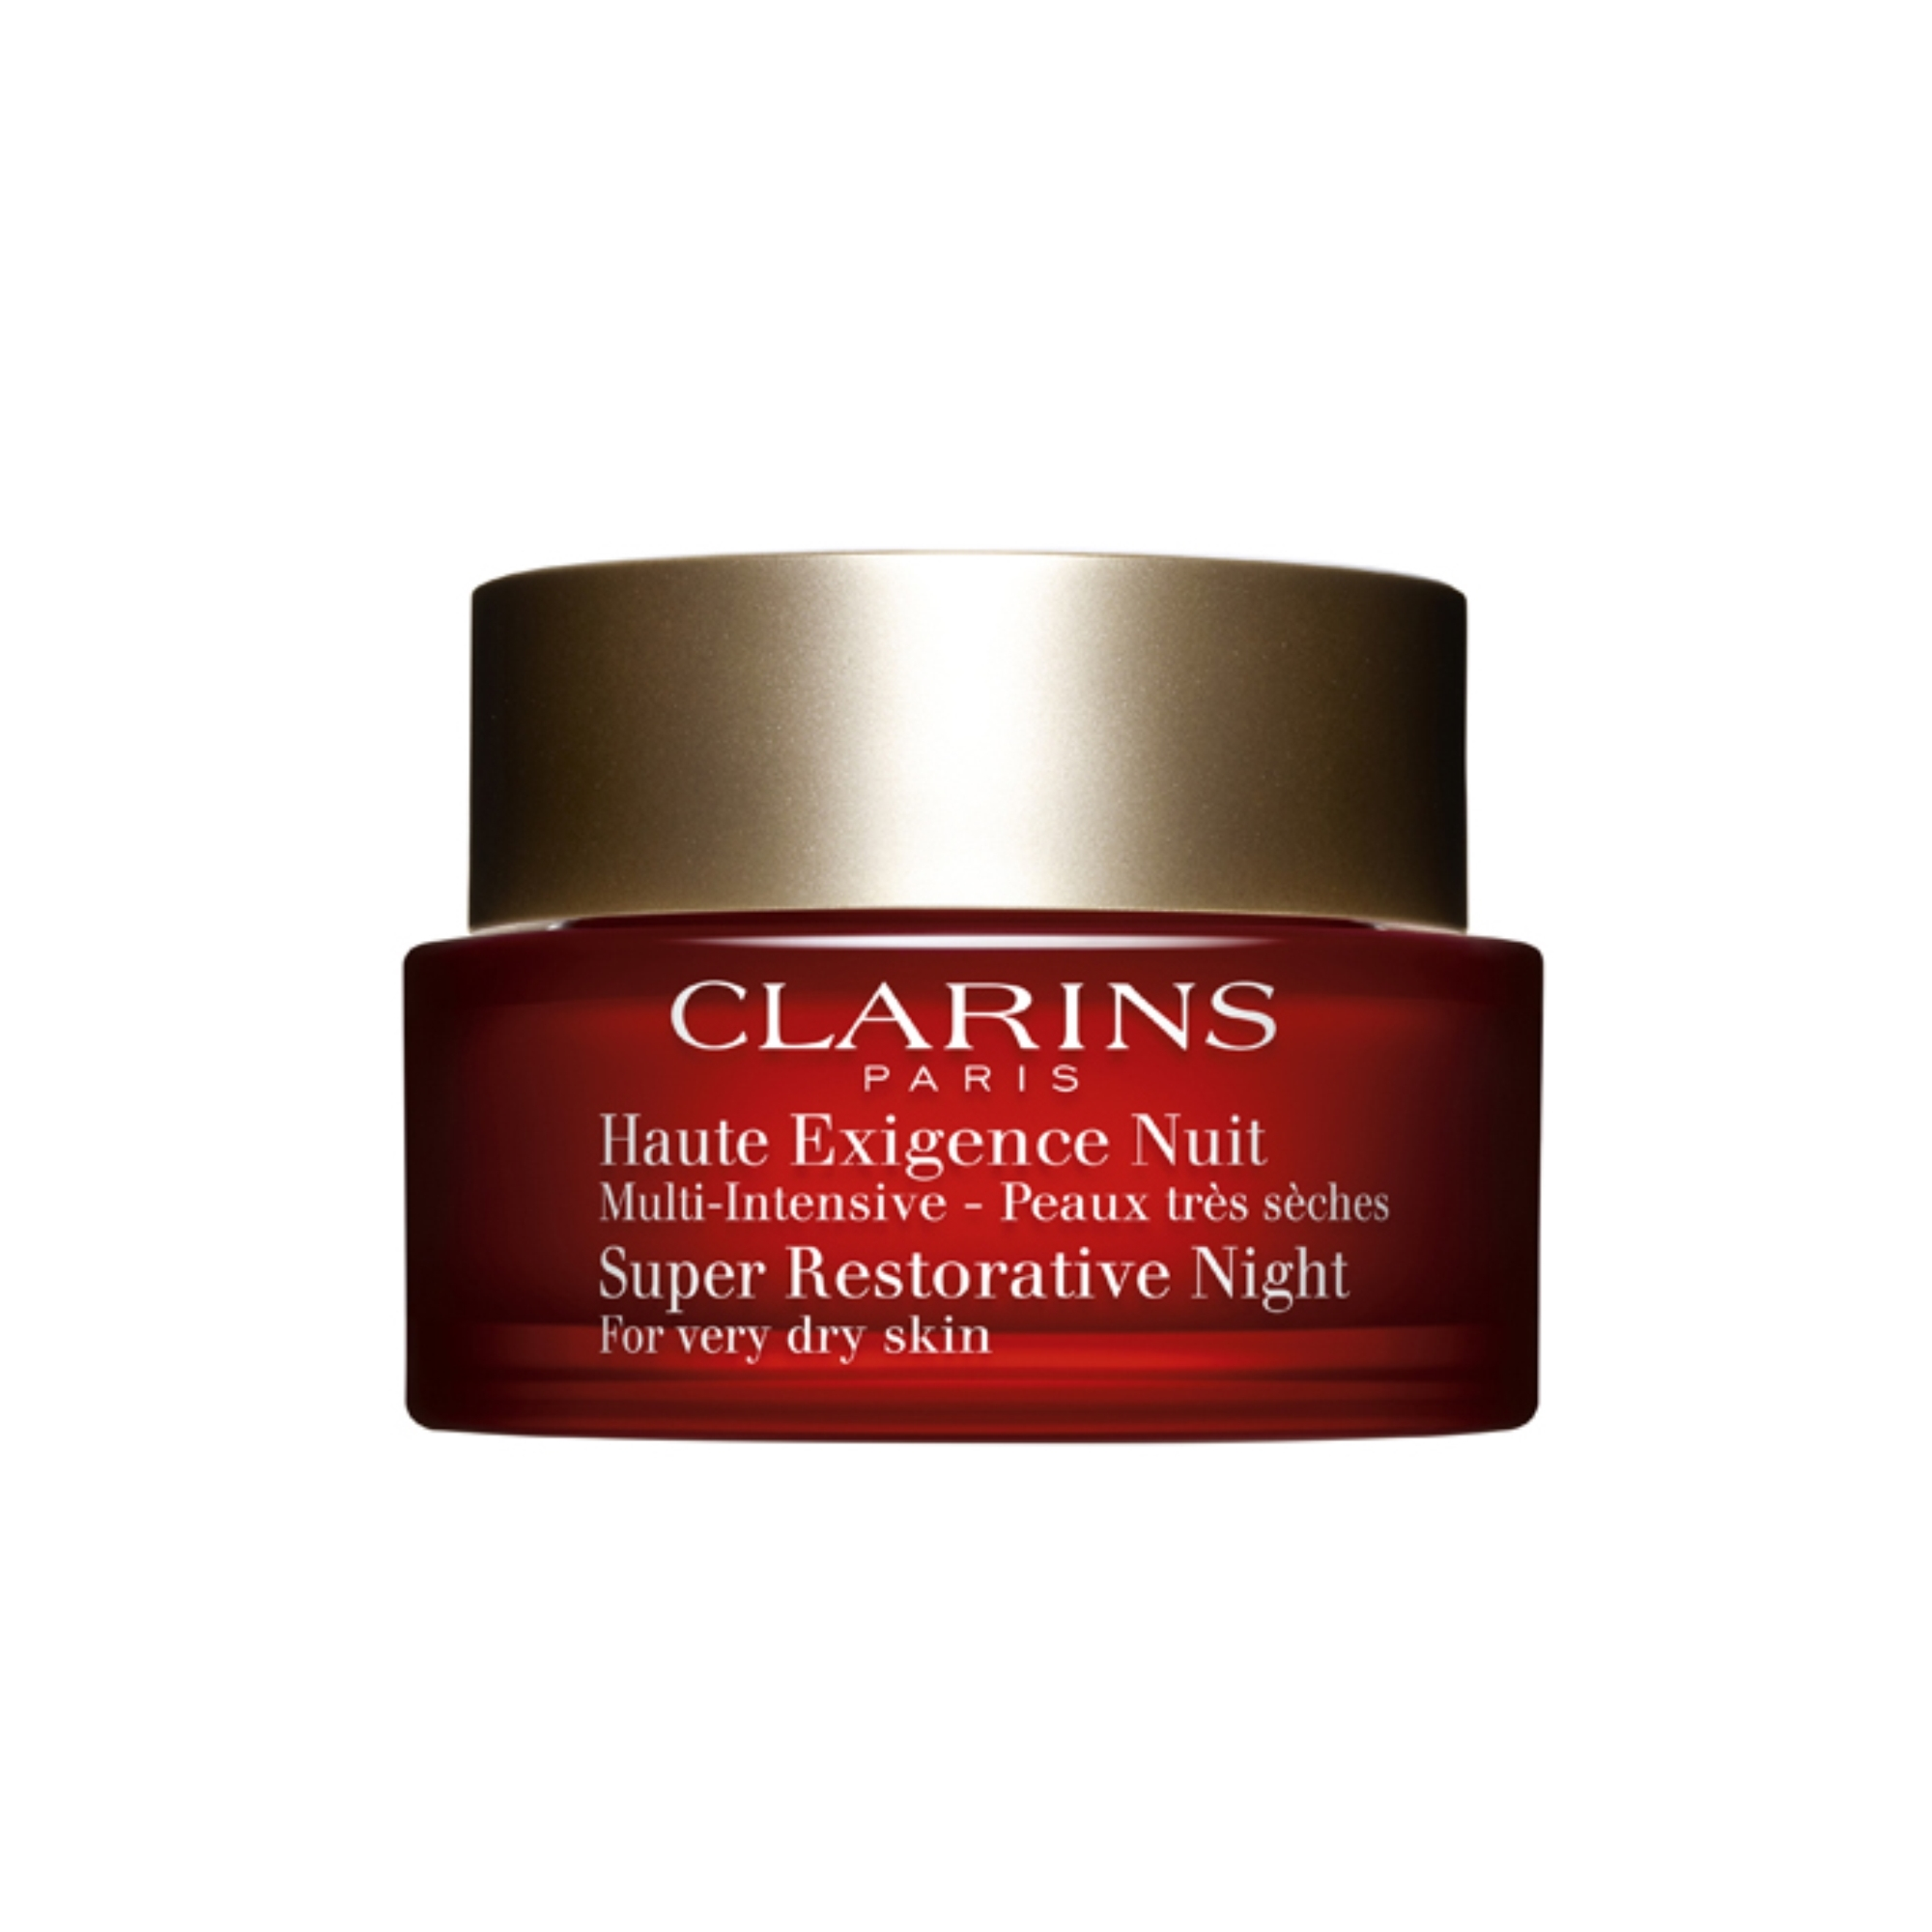 Super Restorative Night Cream for Very Dry Skin